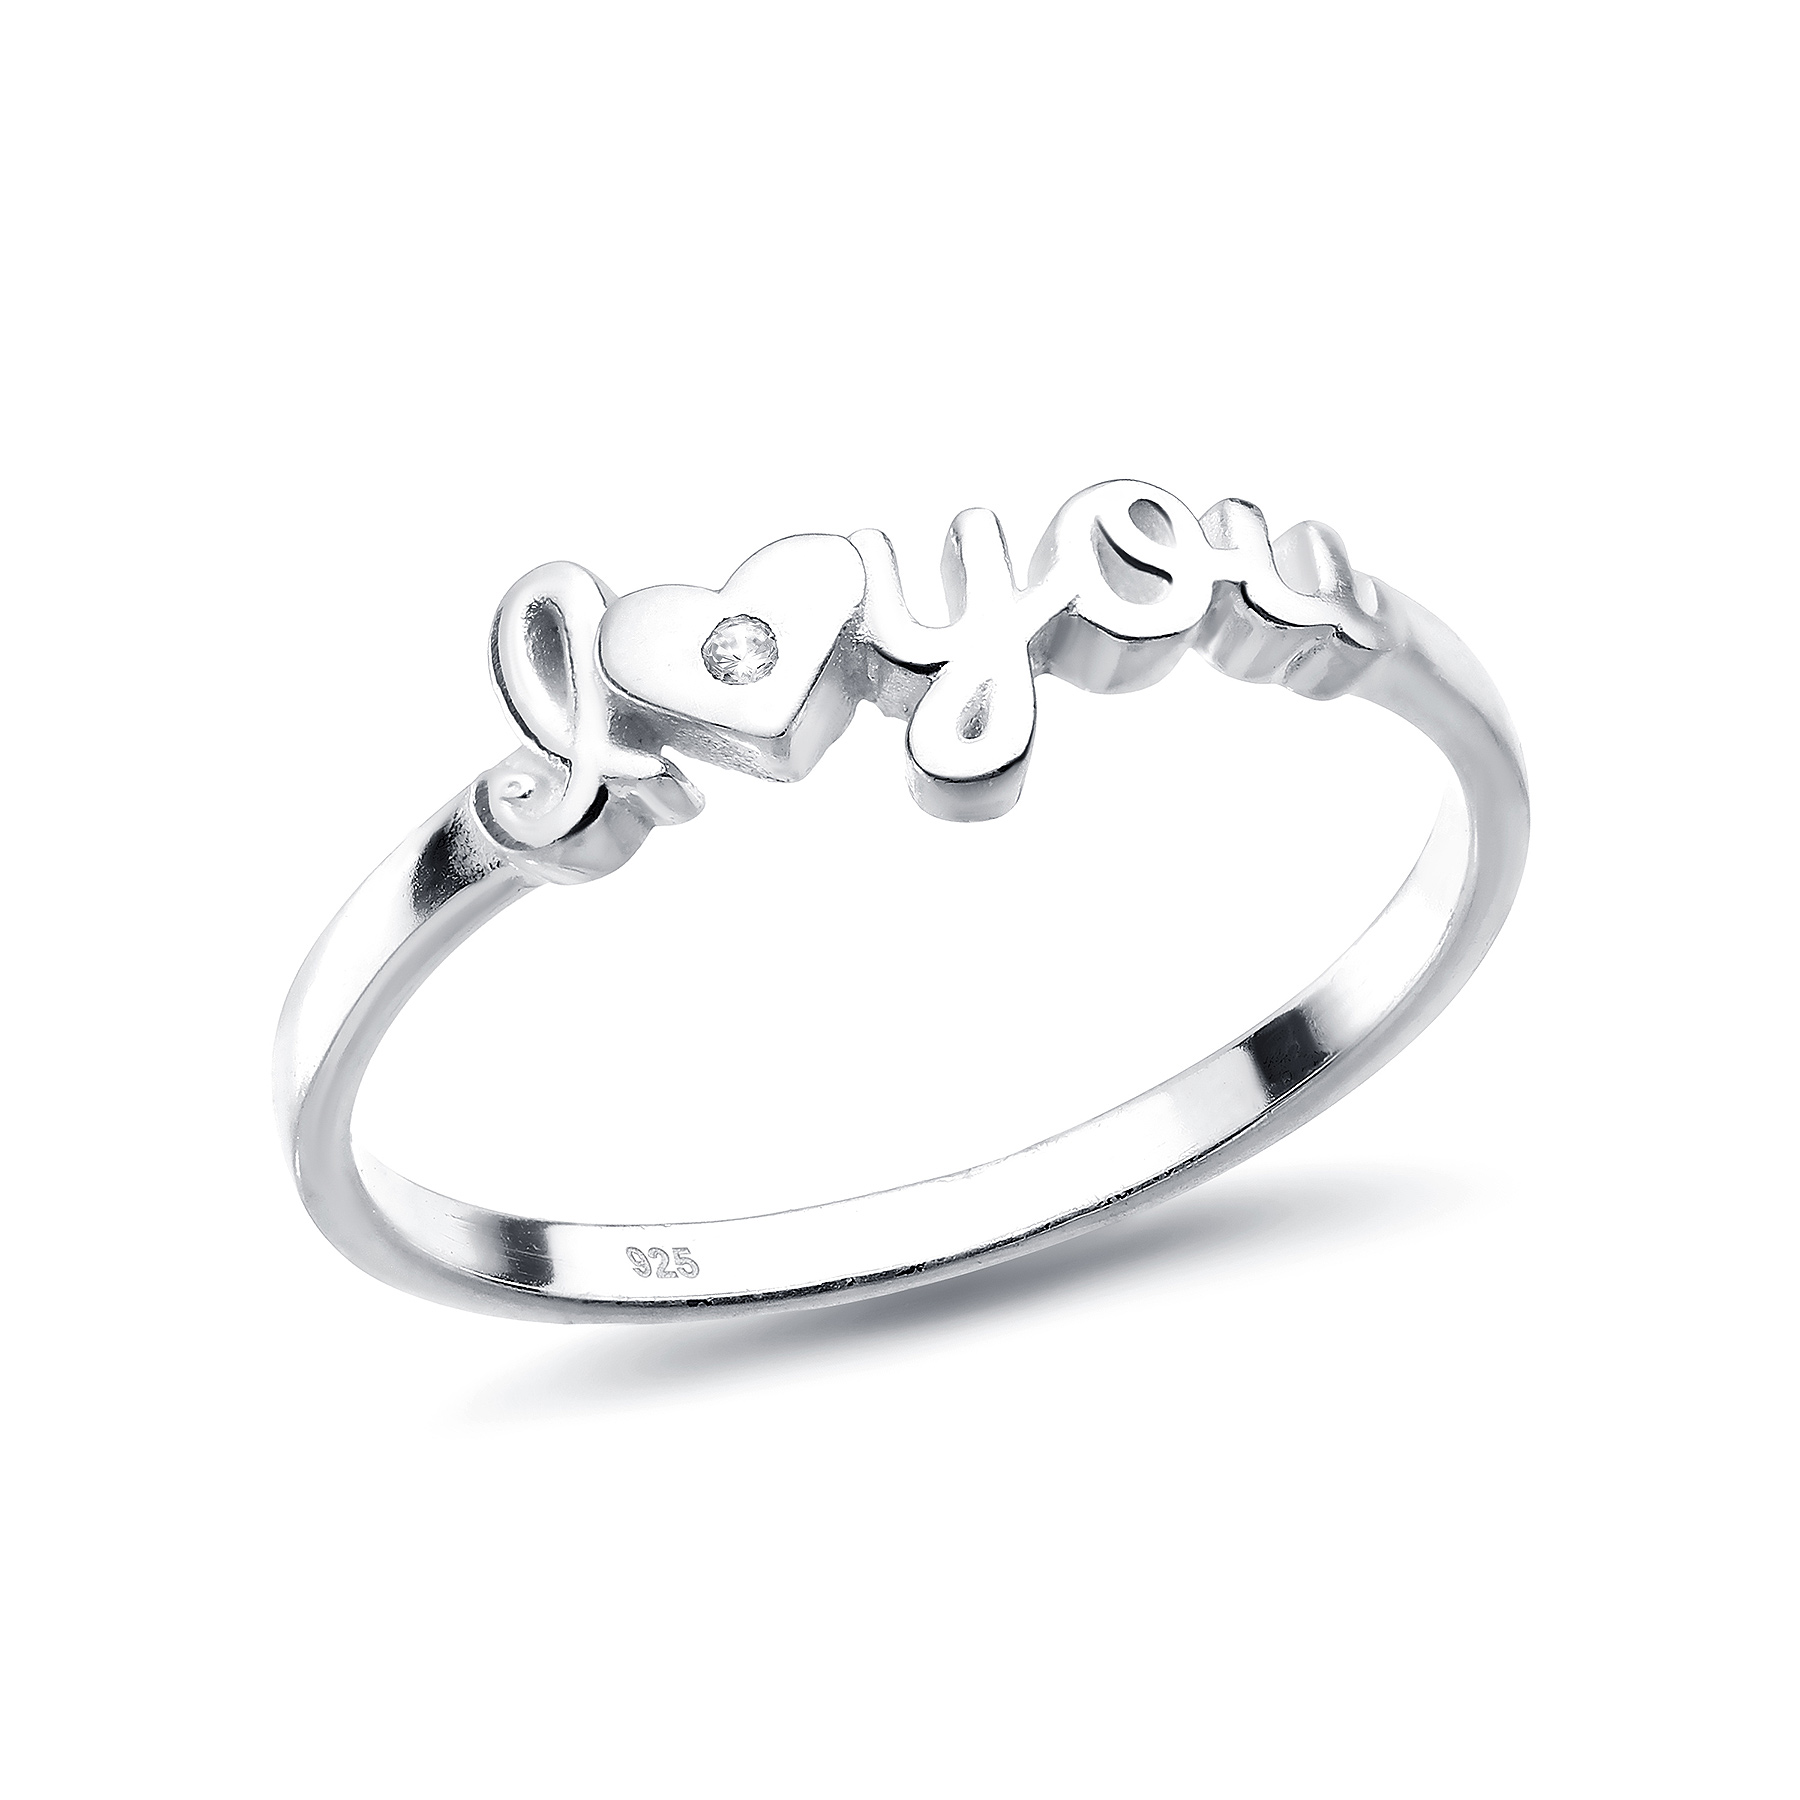 1063-1736 - 925 Sterling Silver Heart I love you Ring Decorated with CZ Simulated Diamonds